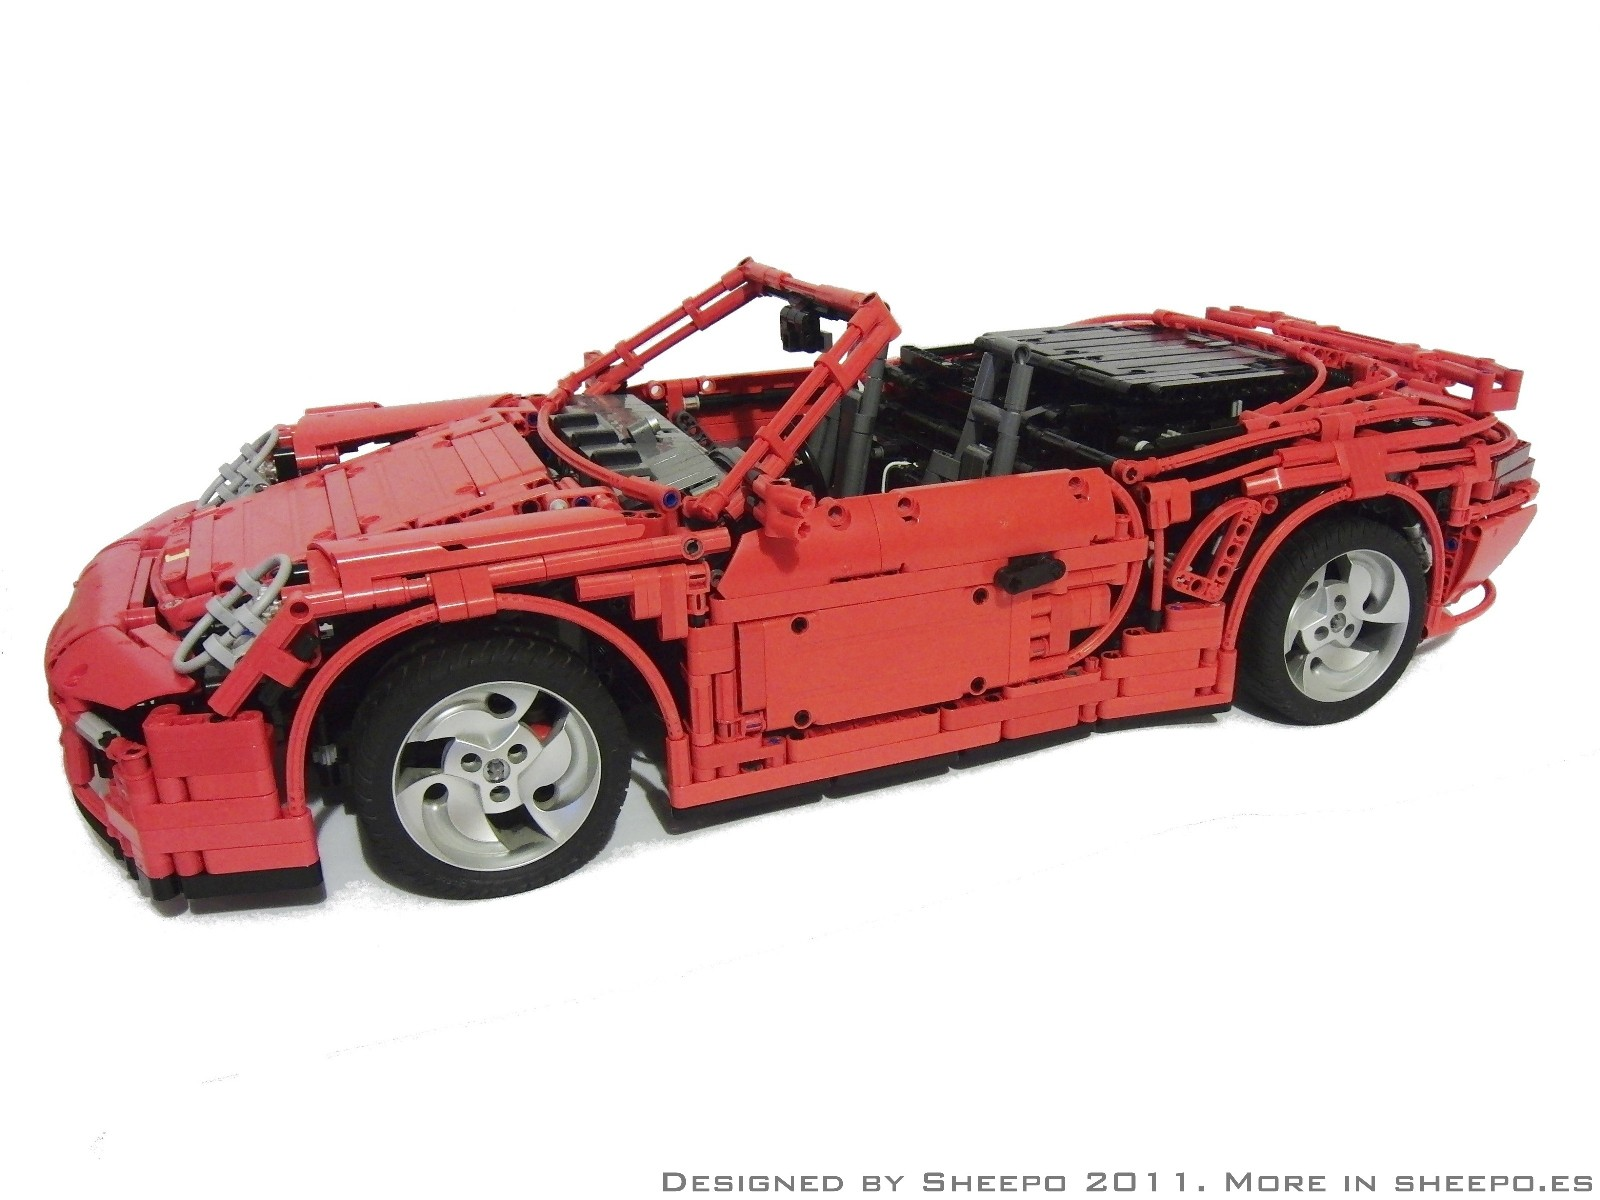 Porsche 911 997 Turbo Cabriolet Pdk Video A Lego Creation By